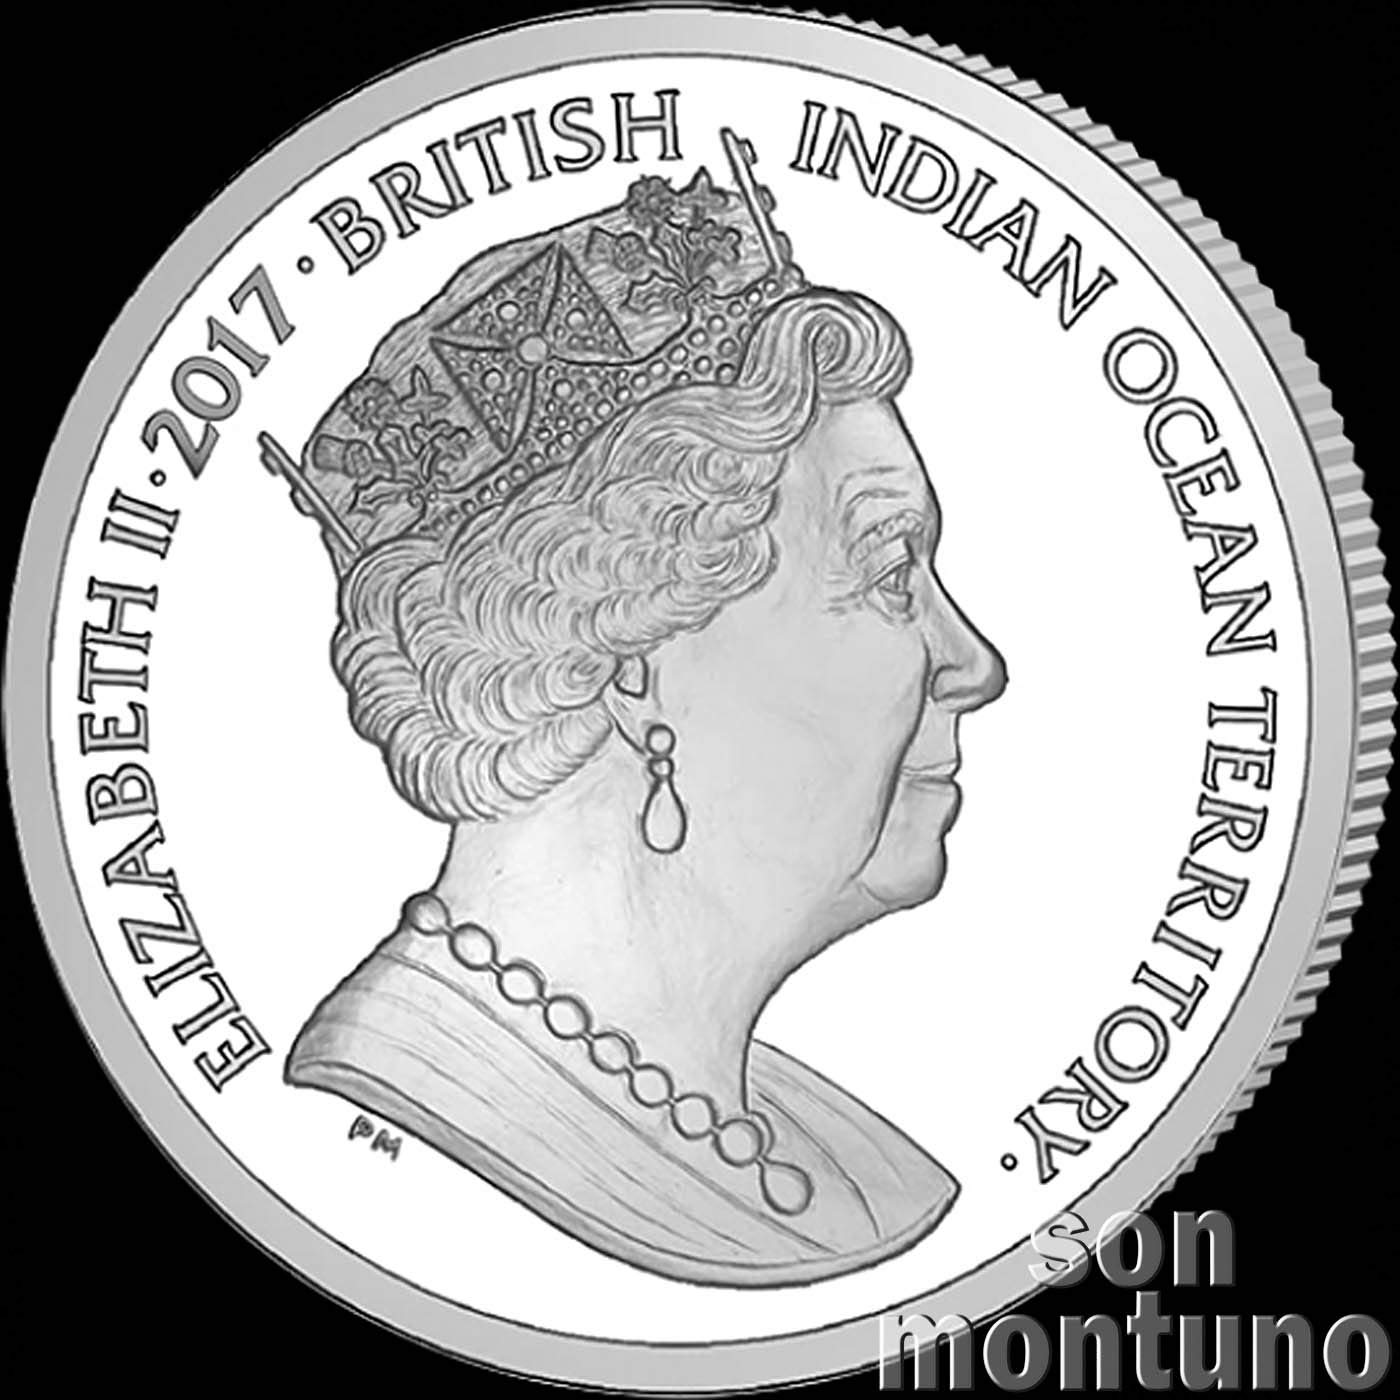 Limited Mintage of Only 10,000 Pieces 2017 British Indian Ocean Territory /£2 Uncirculated Cupro Nickel Coin GREEN SEA TURTLE